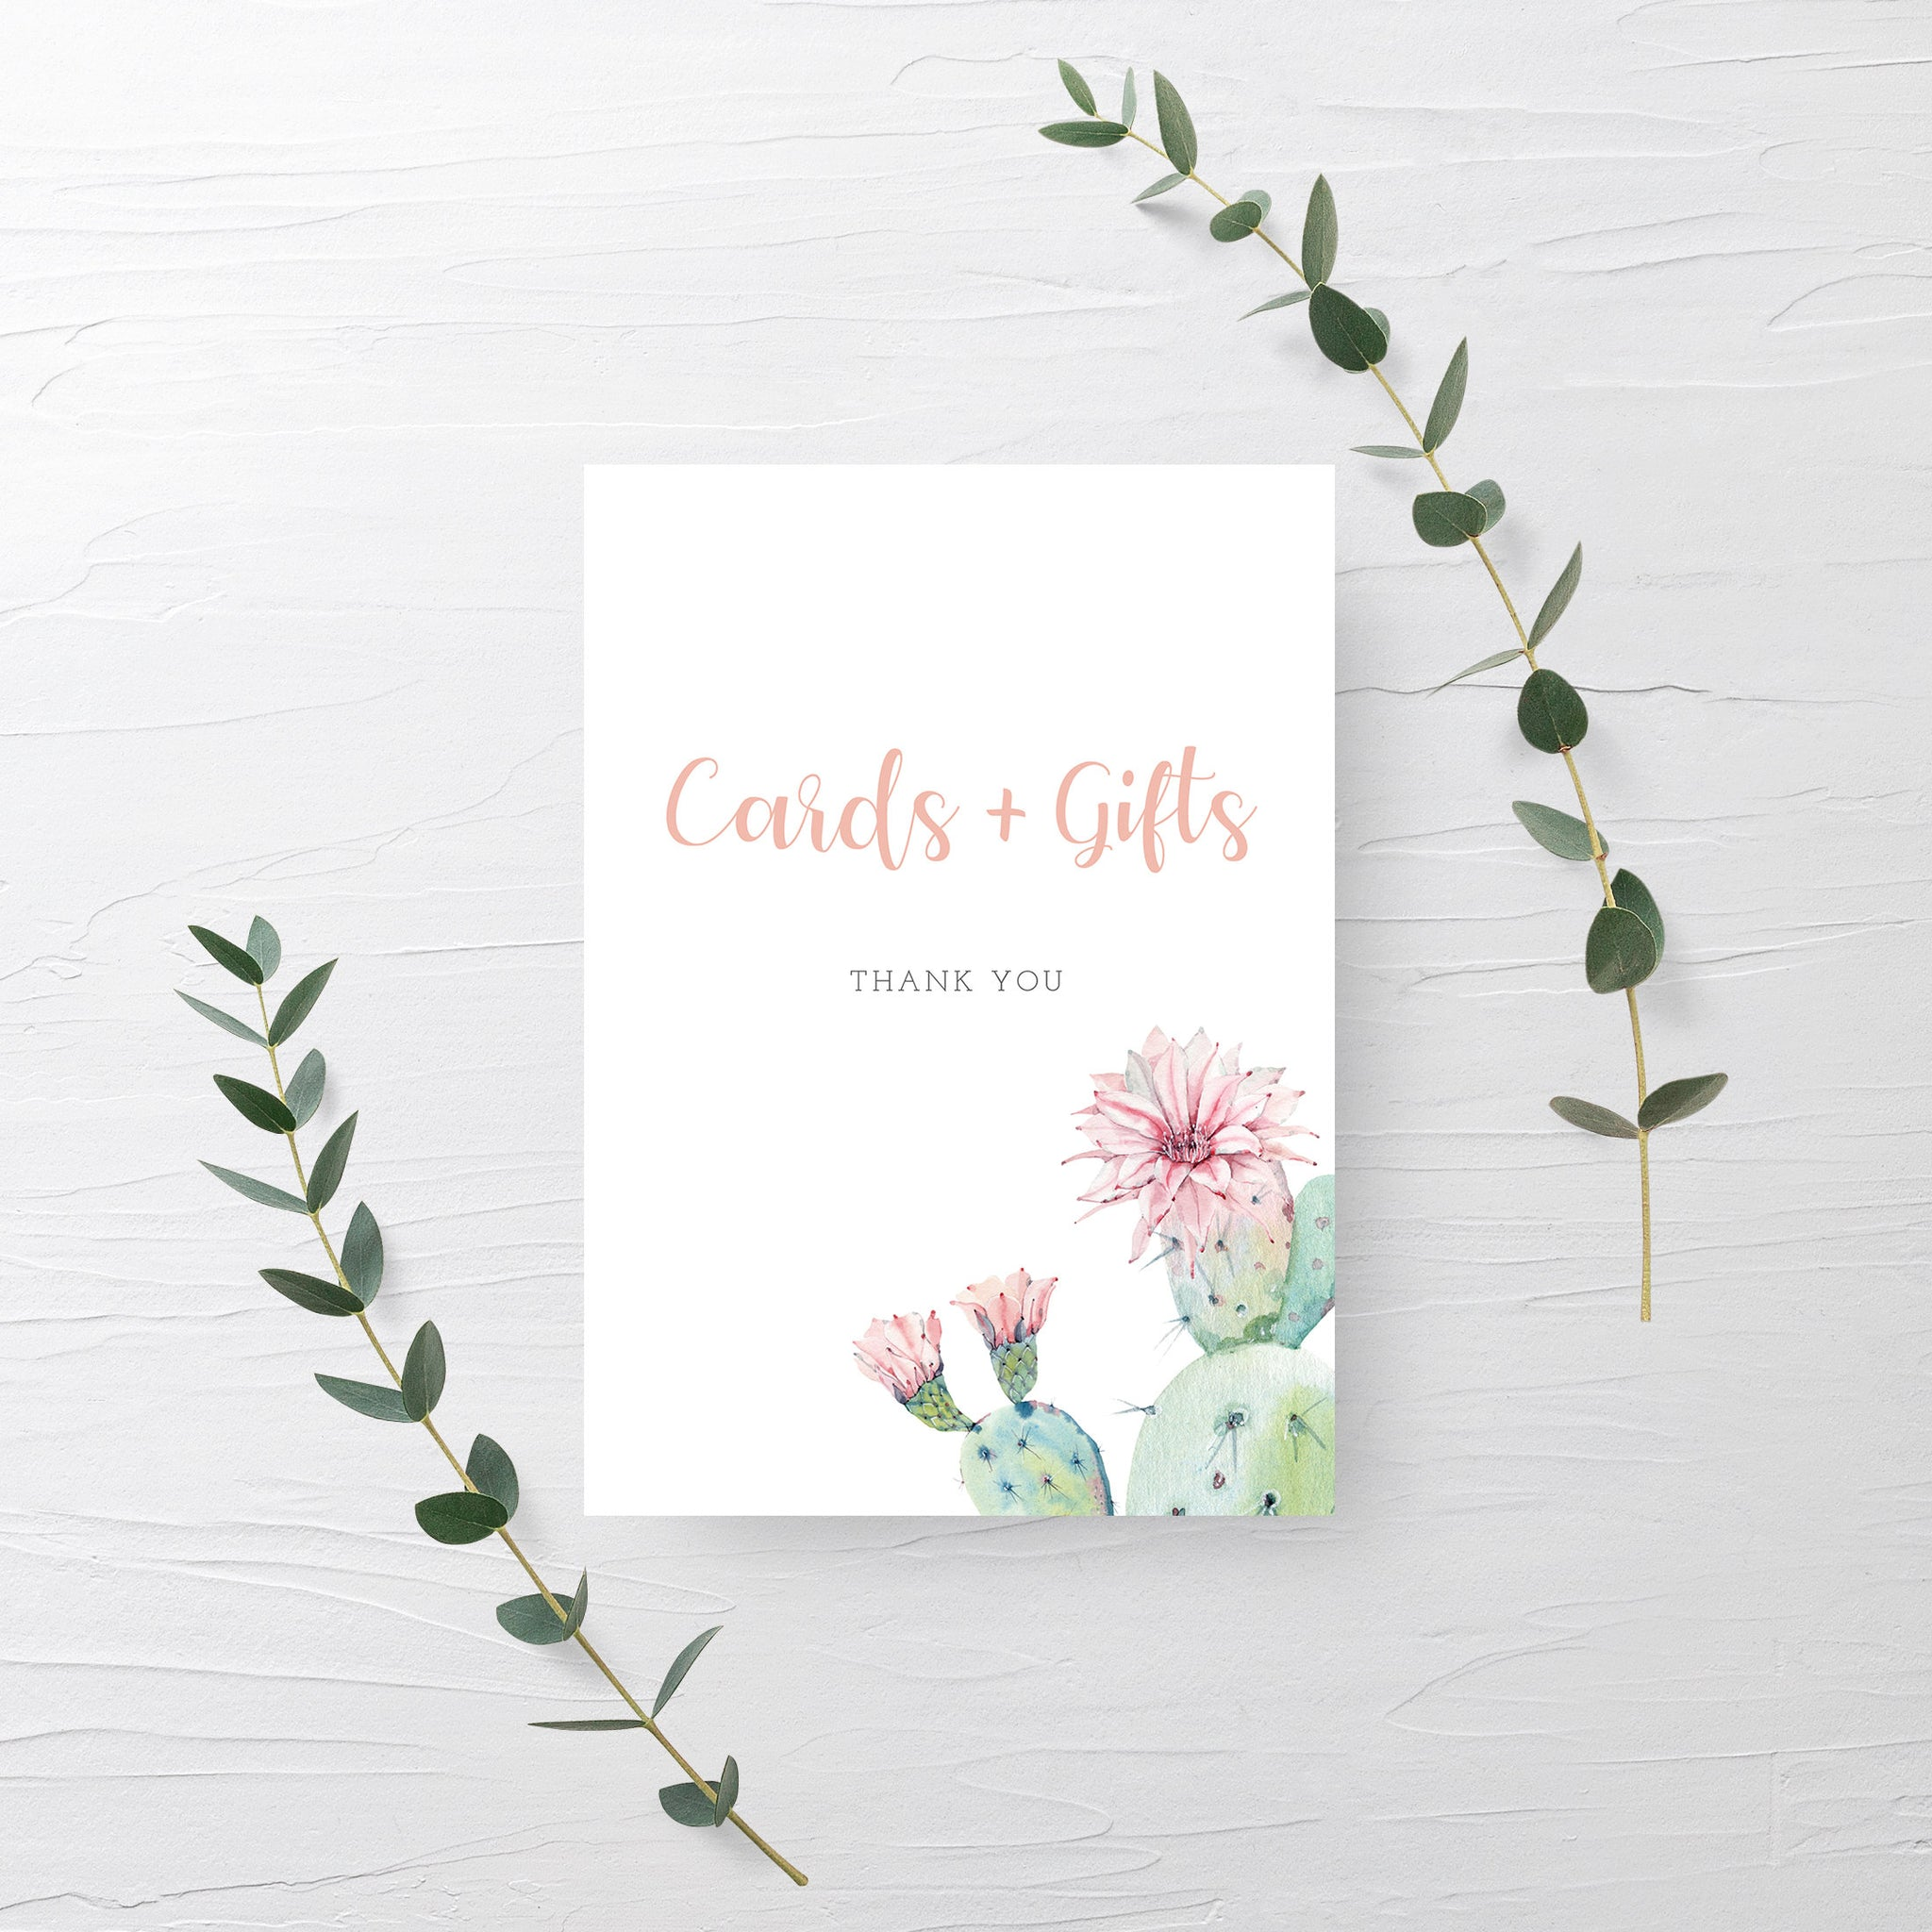 Cactus Cards and Gifts Sign Printable, Succulent Bridal Shower Gift Table Sign, Succulent Baby Shower Table Signs, DIGITAL DOWNLOAD - CS100 - @PlumPolkaDot